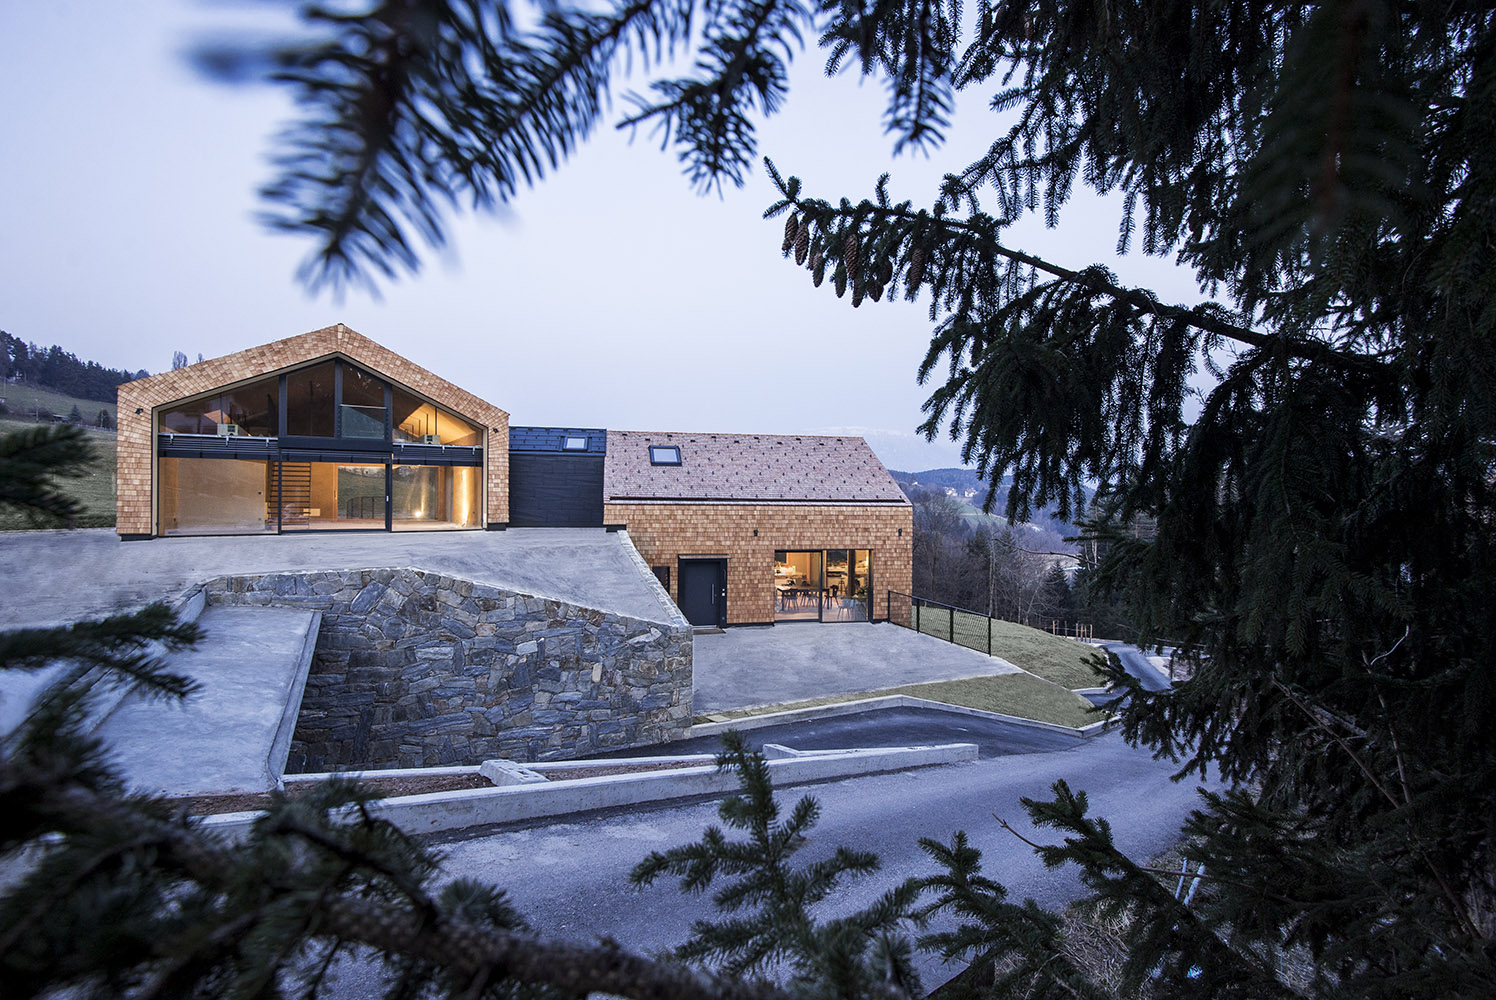 villa with pitched roofs